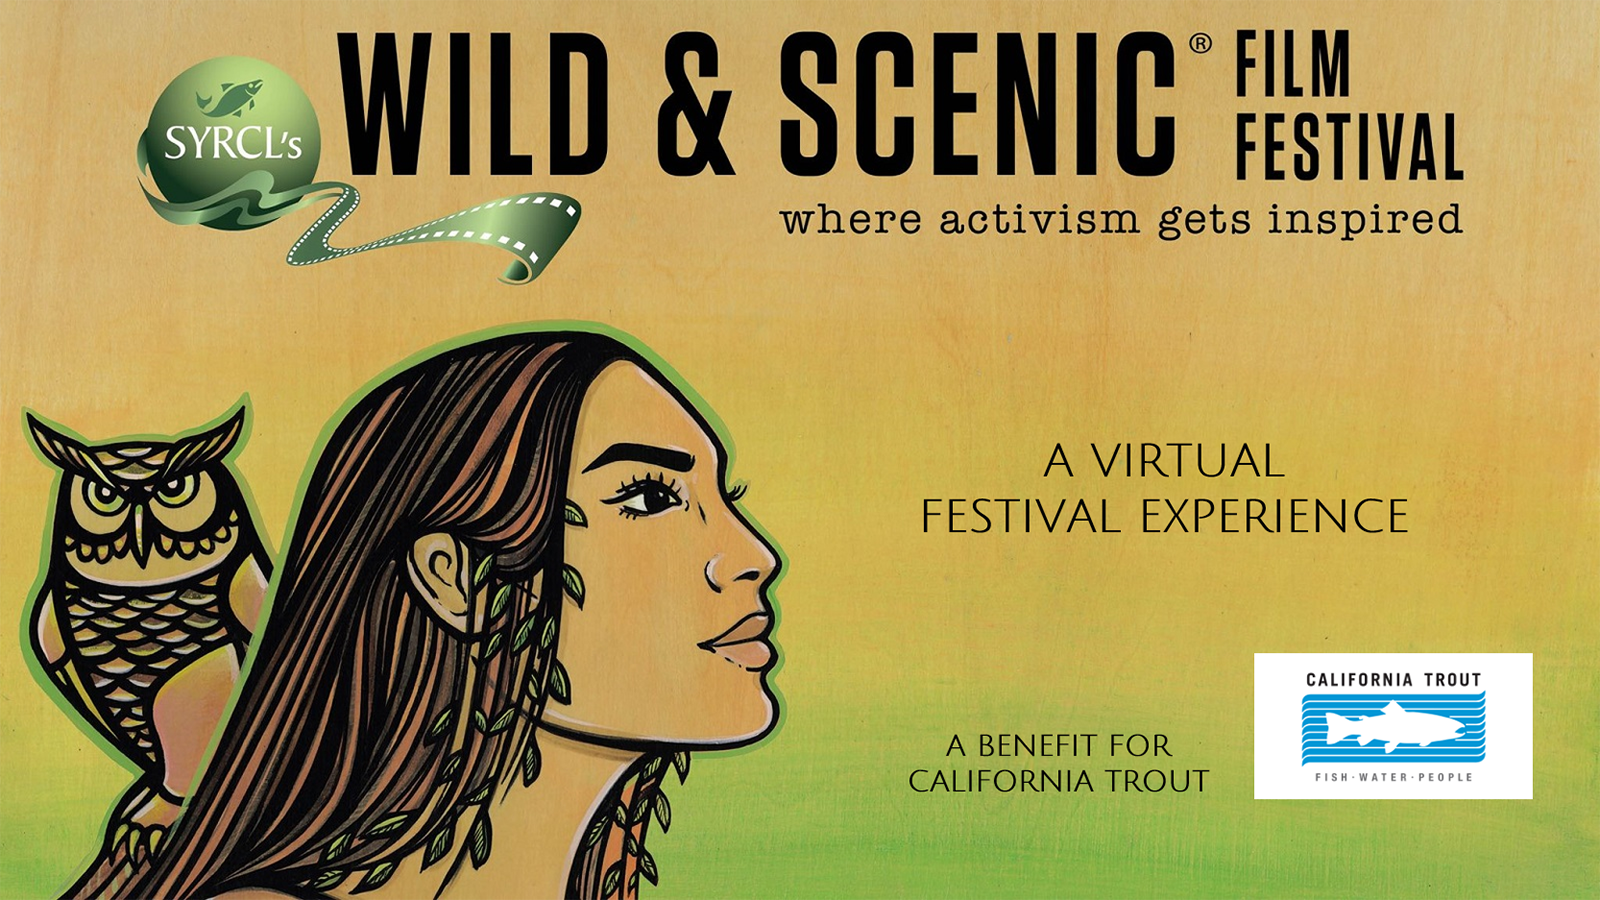 California Trout Present SYRCL's Wild & Scenic Film Festival On Tour